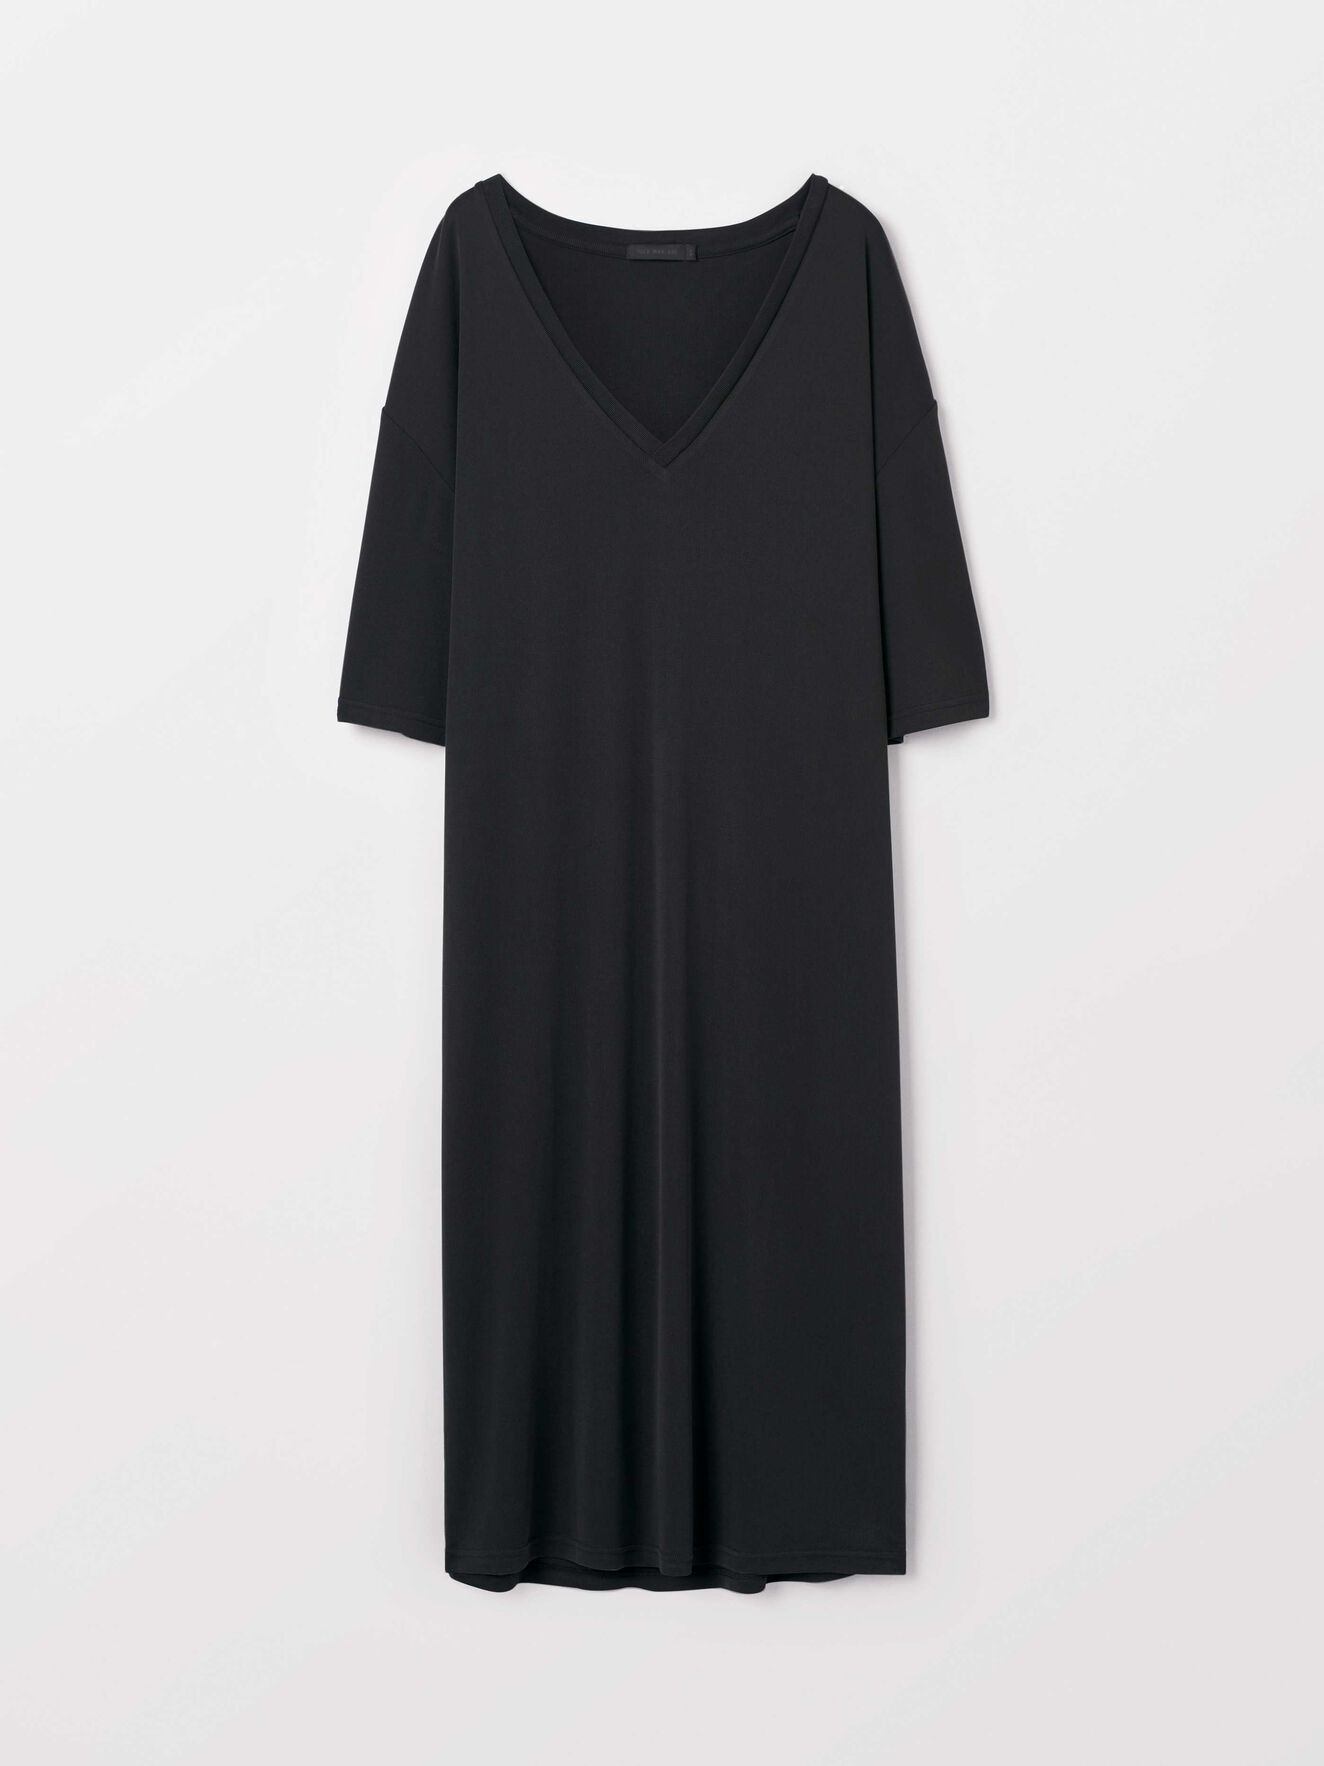 Remy Dress in Black from Tiger of Sweden